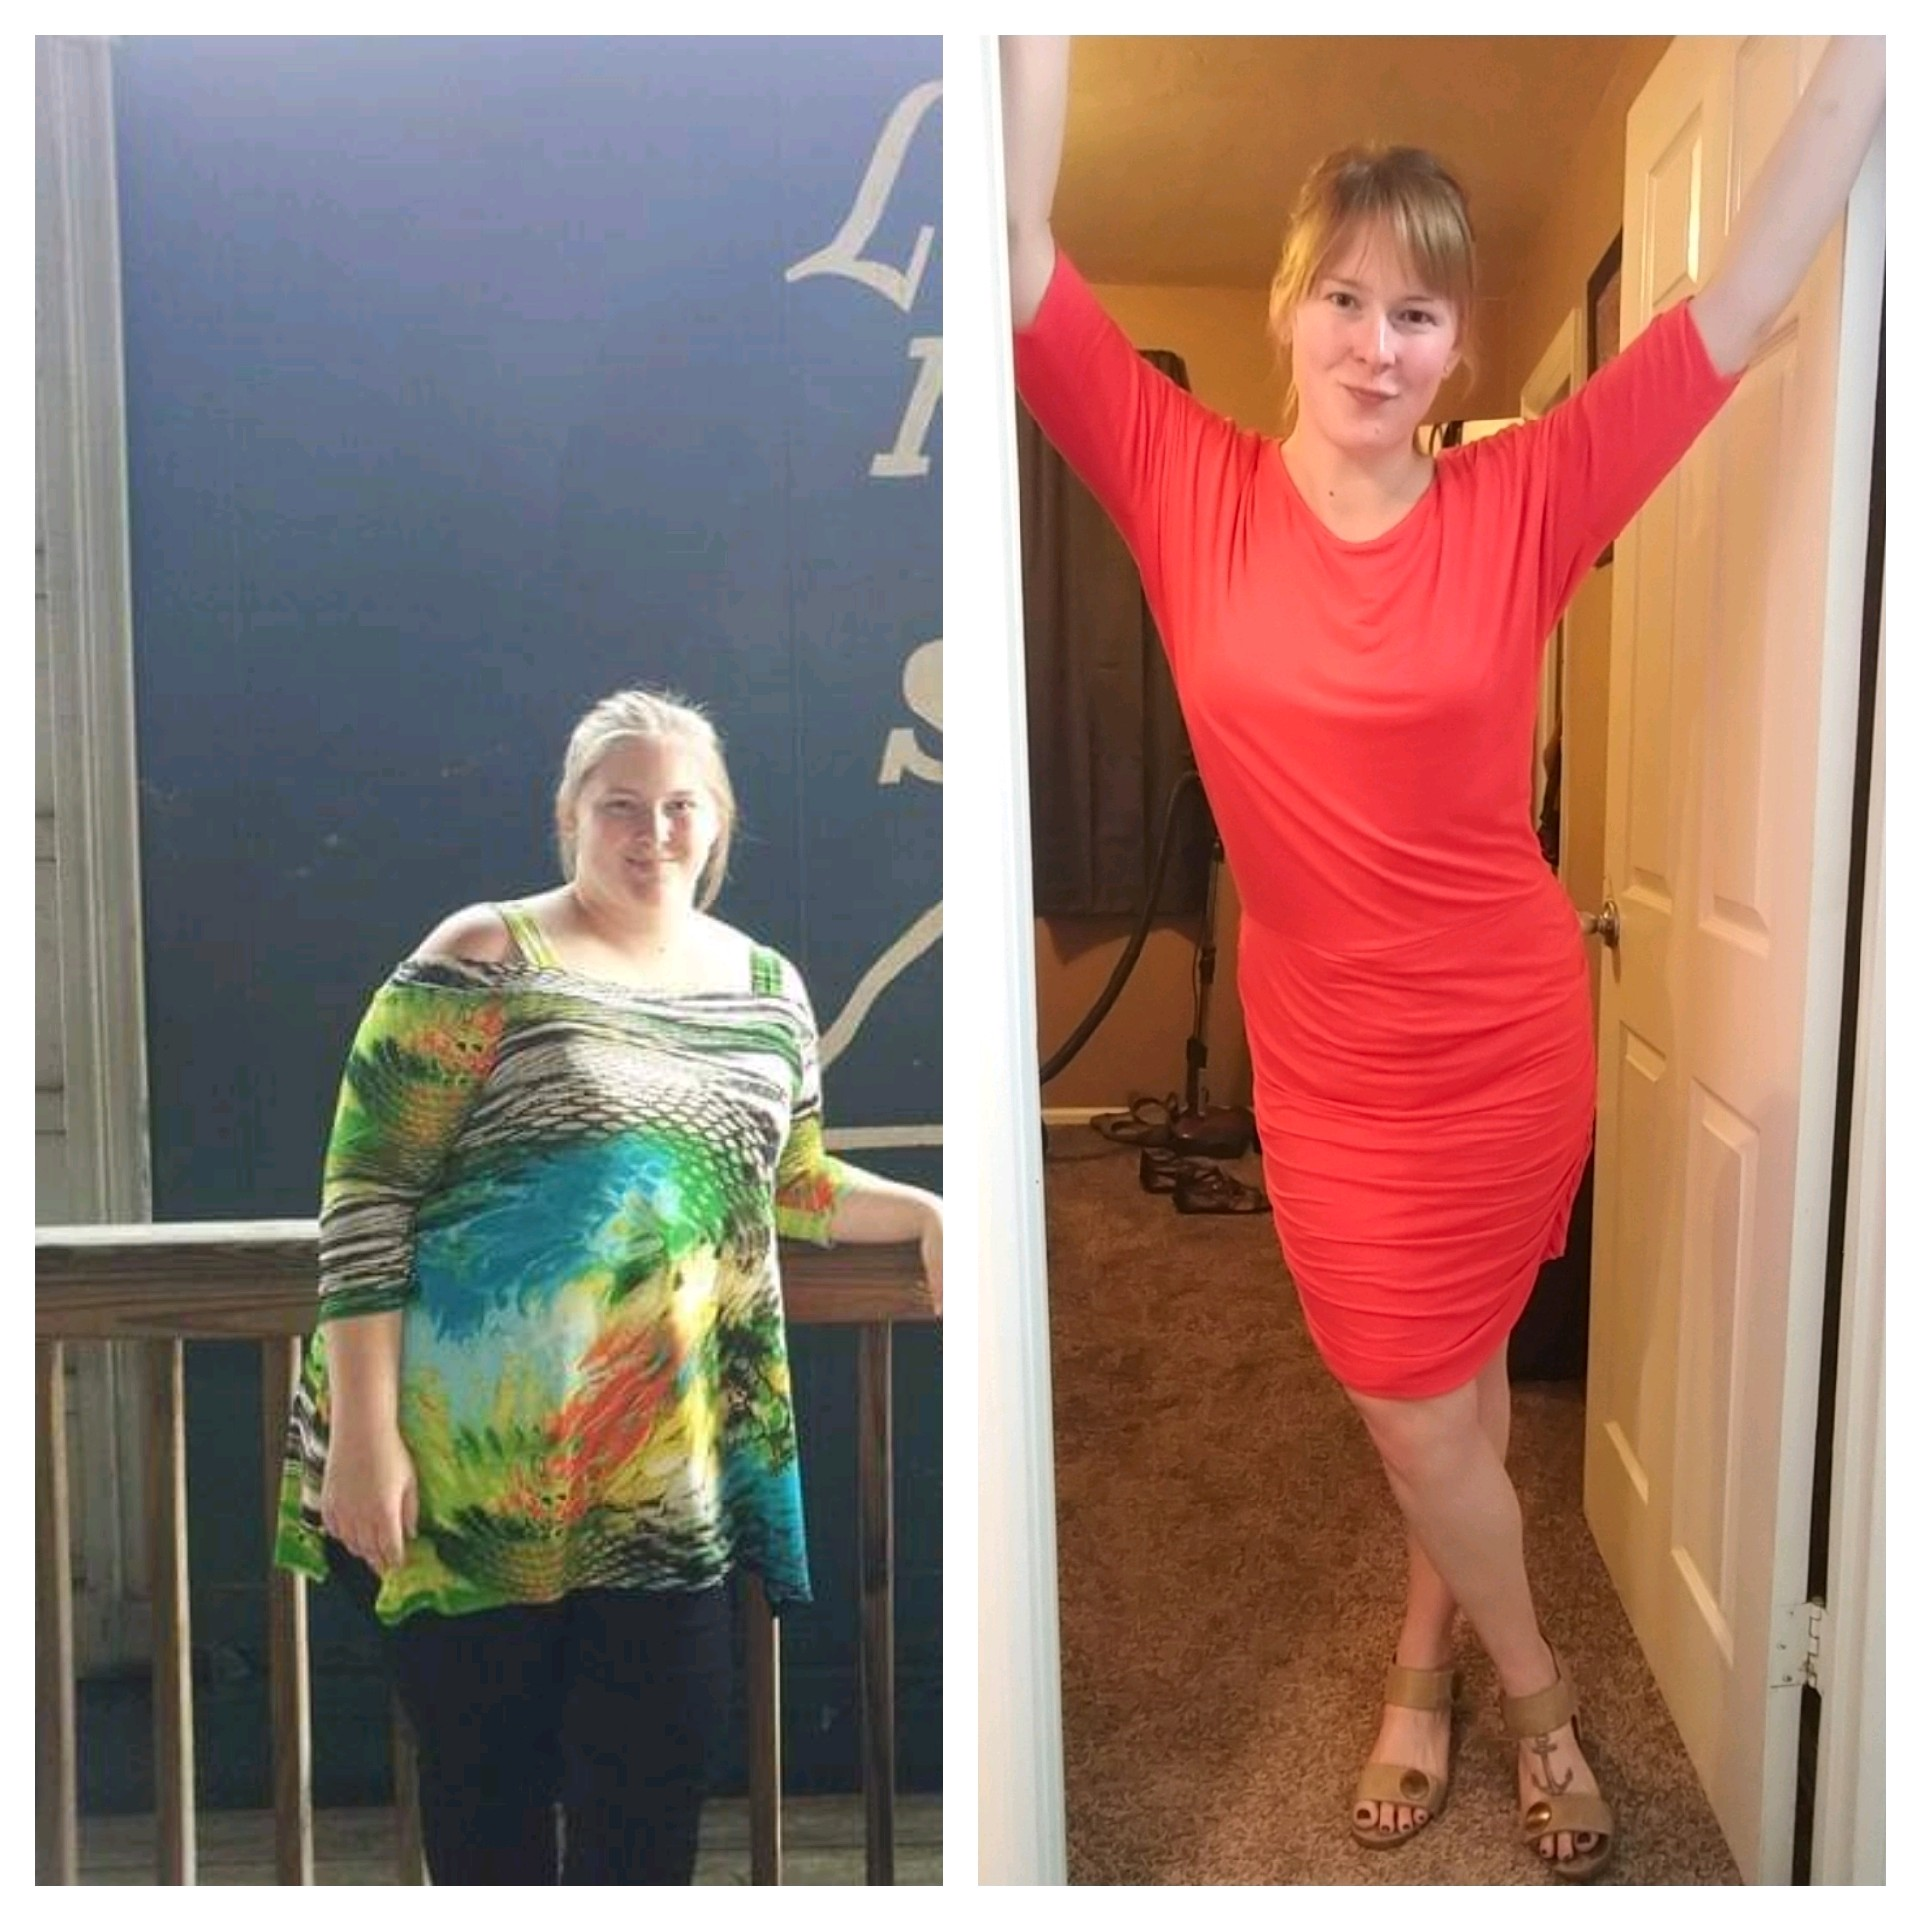 100 lbs Weight Loss Before and After 5 foot 7 Female 275 lbs to 175 lbs